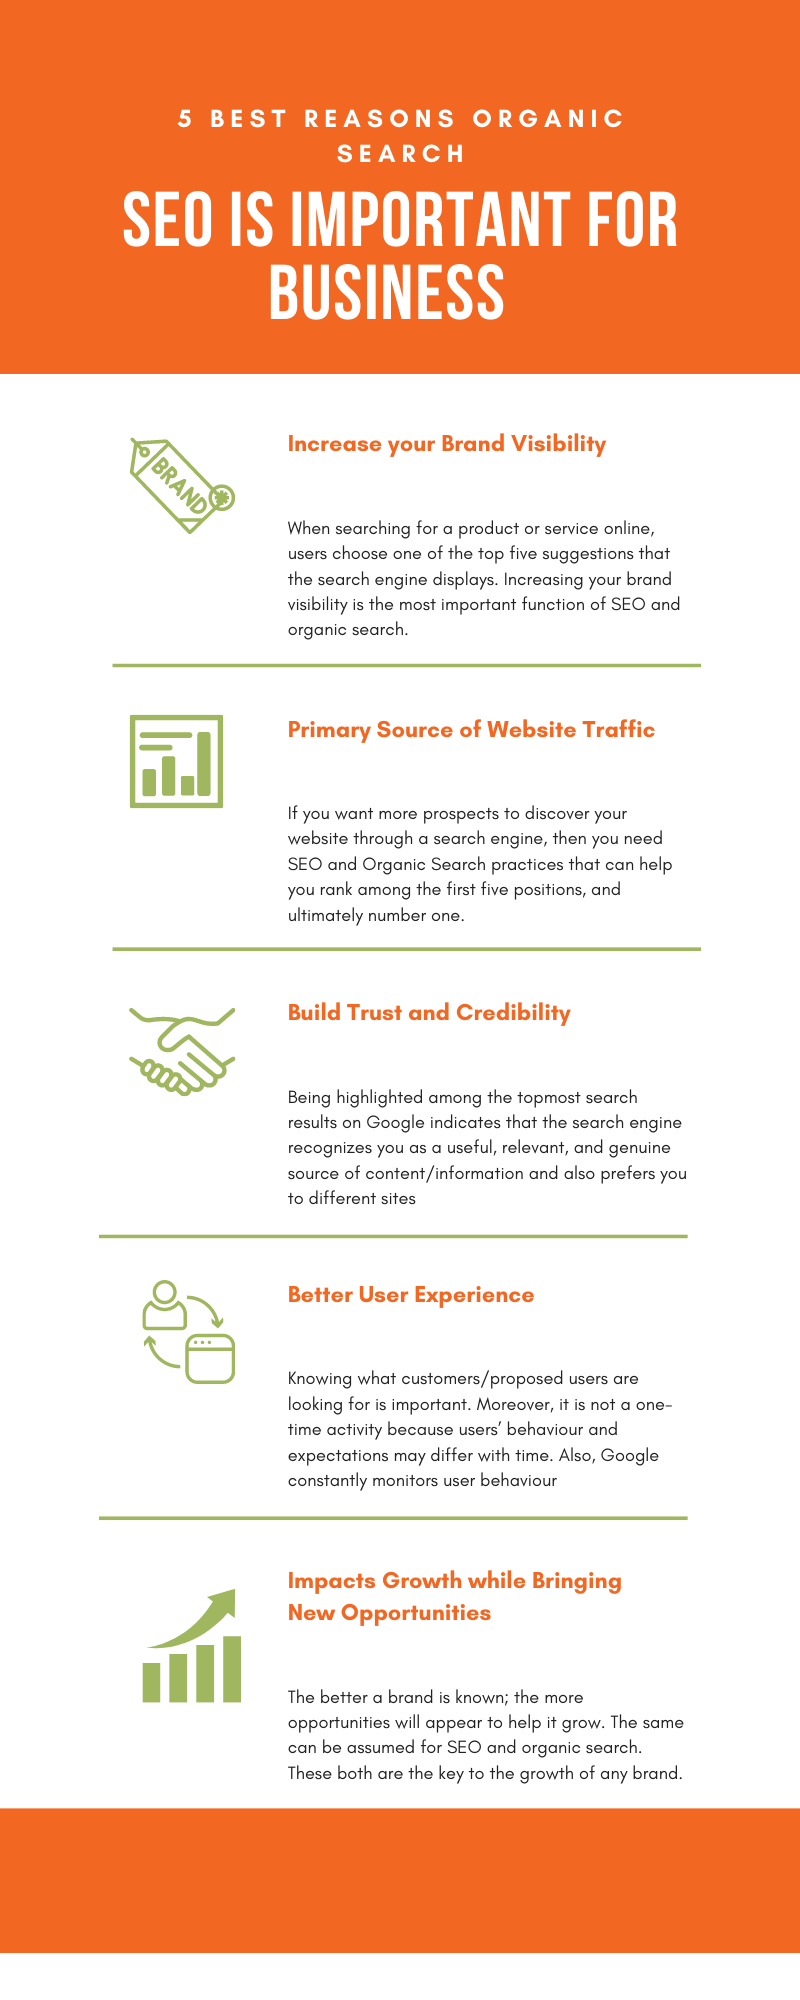 Organic Search and SEO is important for business infographic